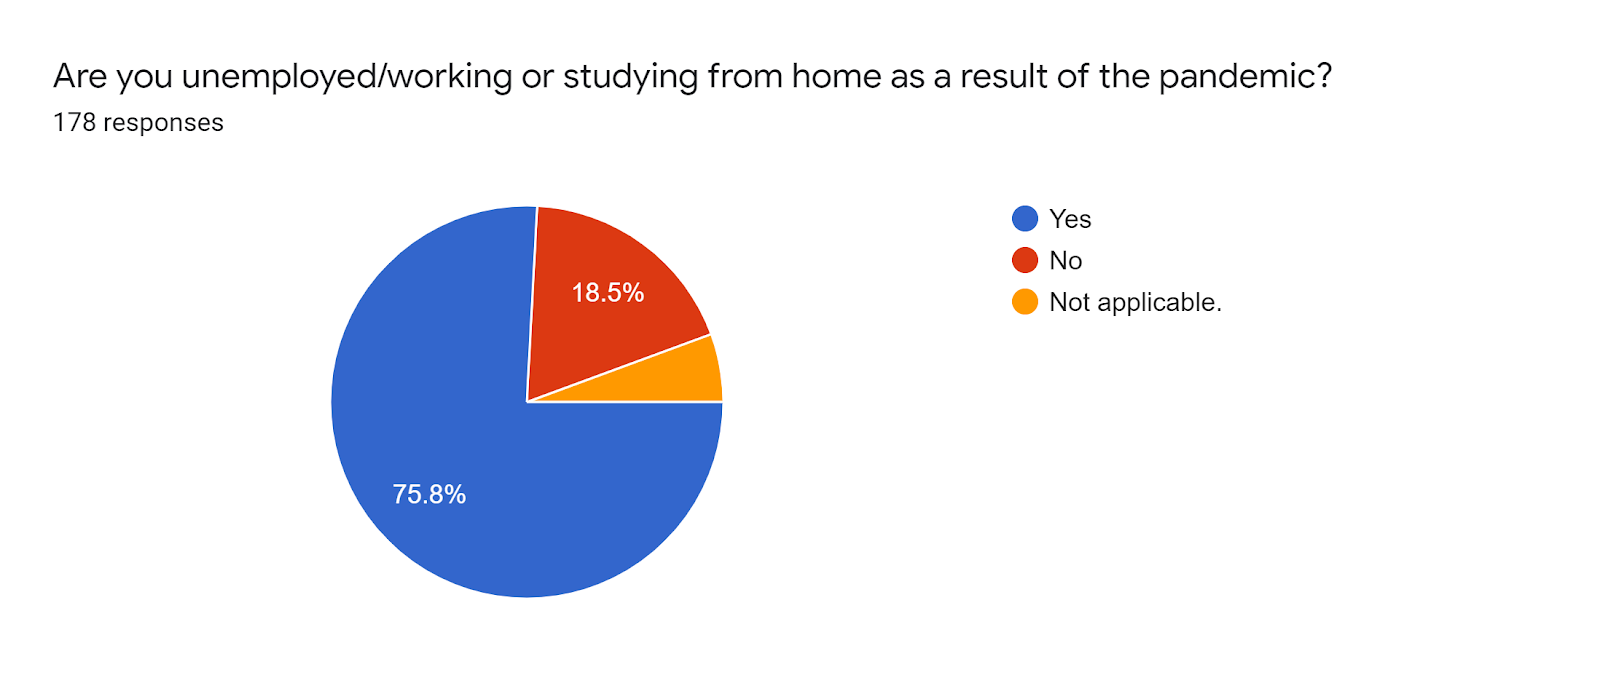 Forms response chart. Question title: Are you unemployed/working or studying from home as a result of the pandemic?. Number of responses: 178 responses.